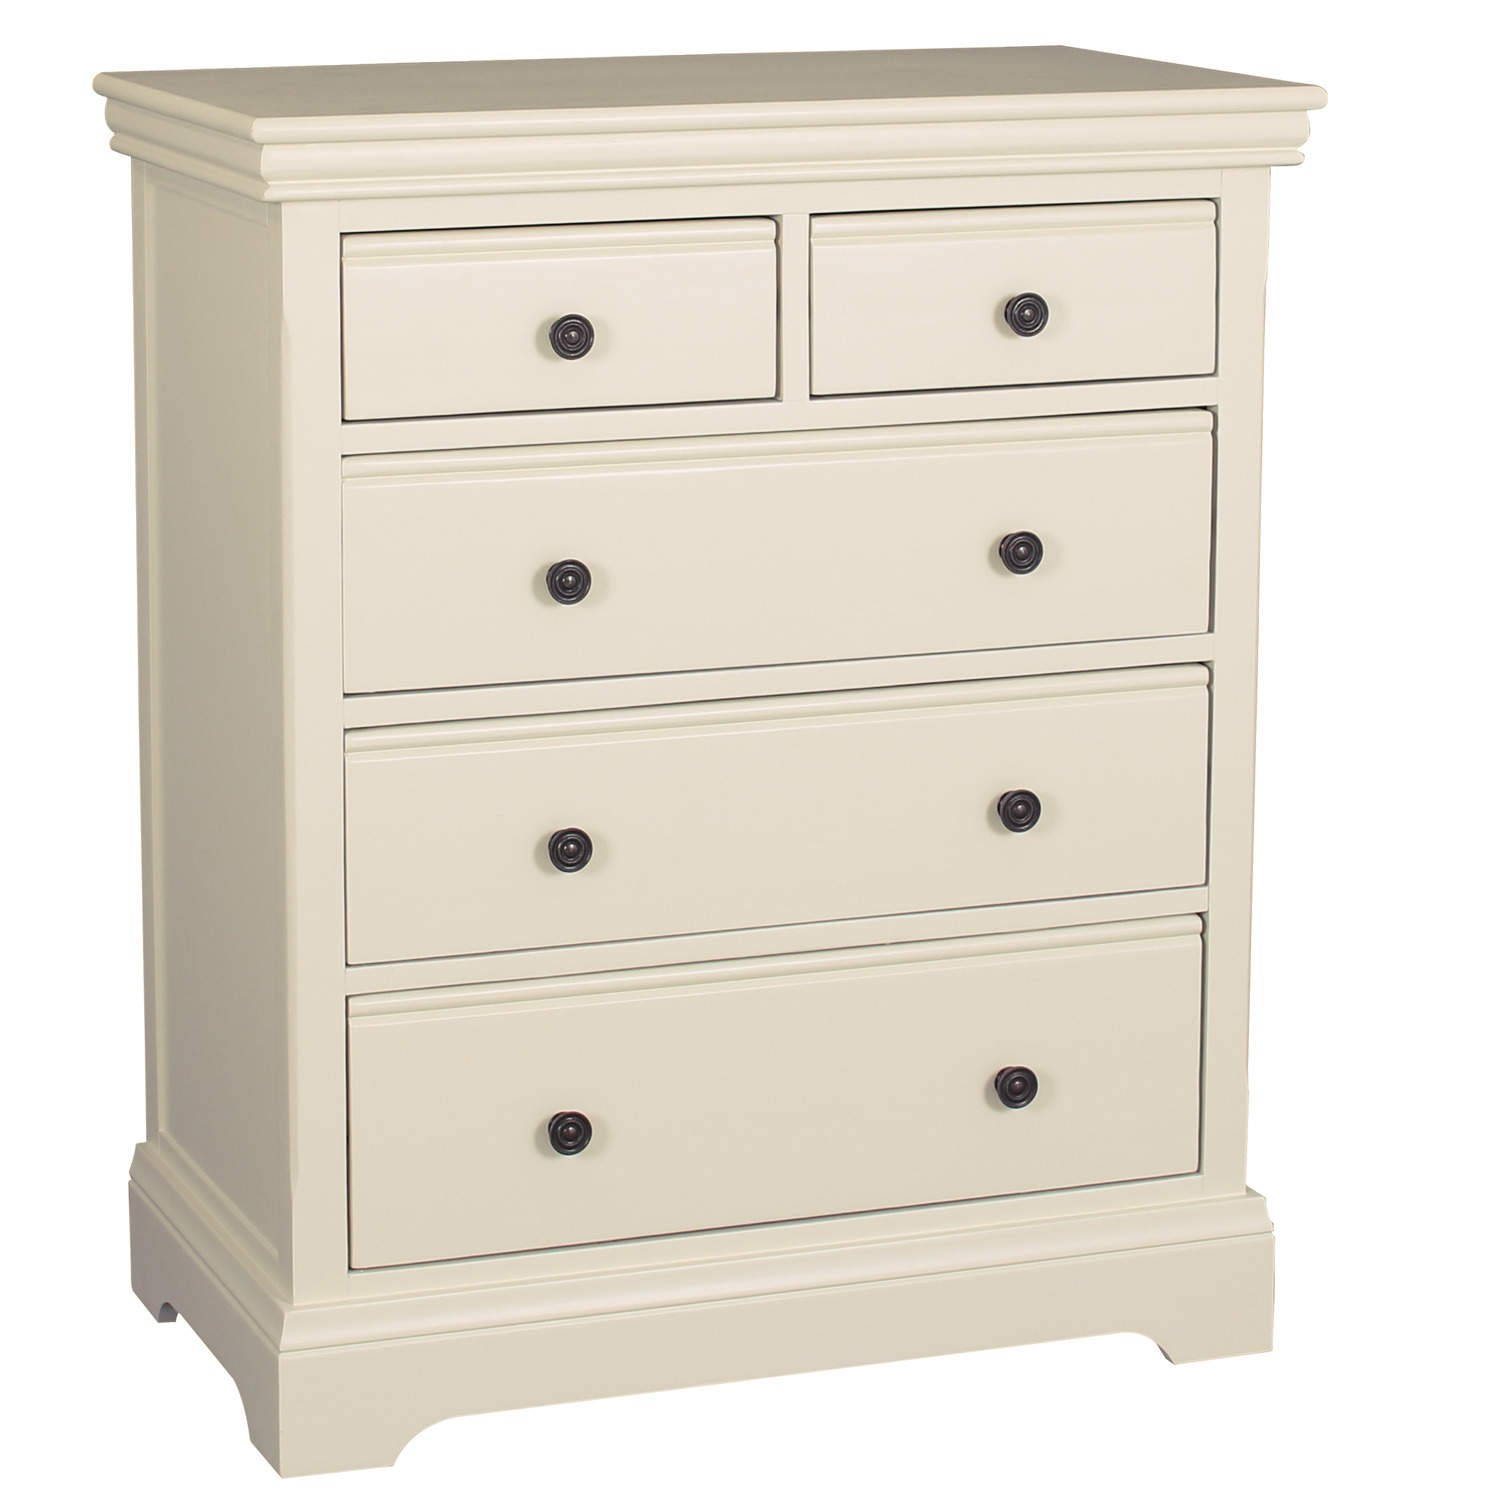 Bedroom Chests Of Drawers: Ivory Solid Wooden 3 + 2 Drawer Chest Of Drawers Bedroom